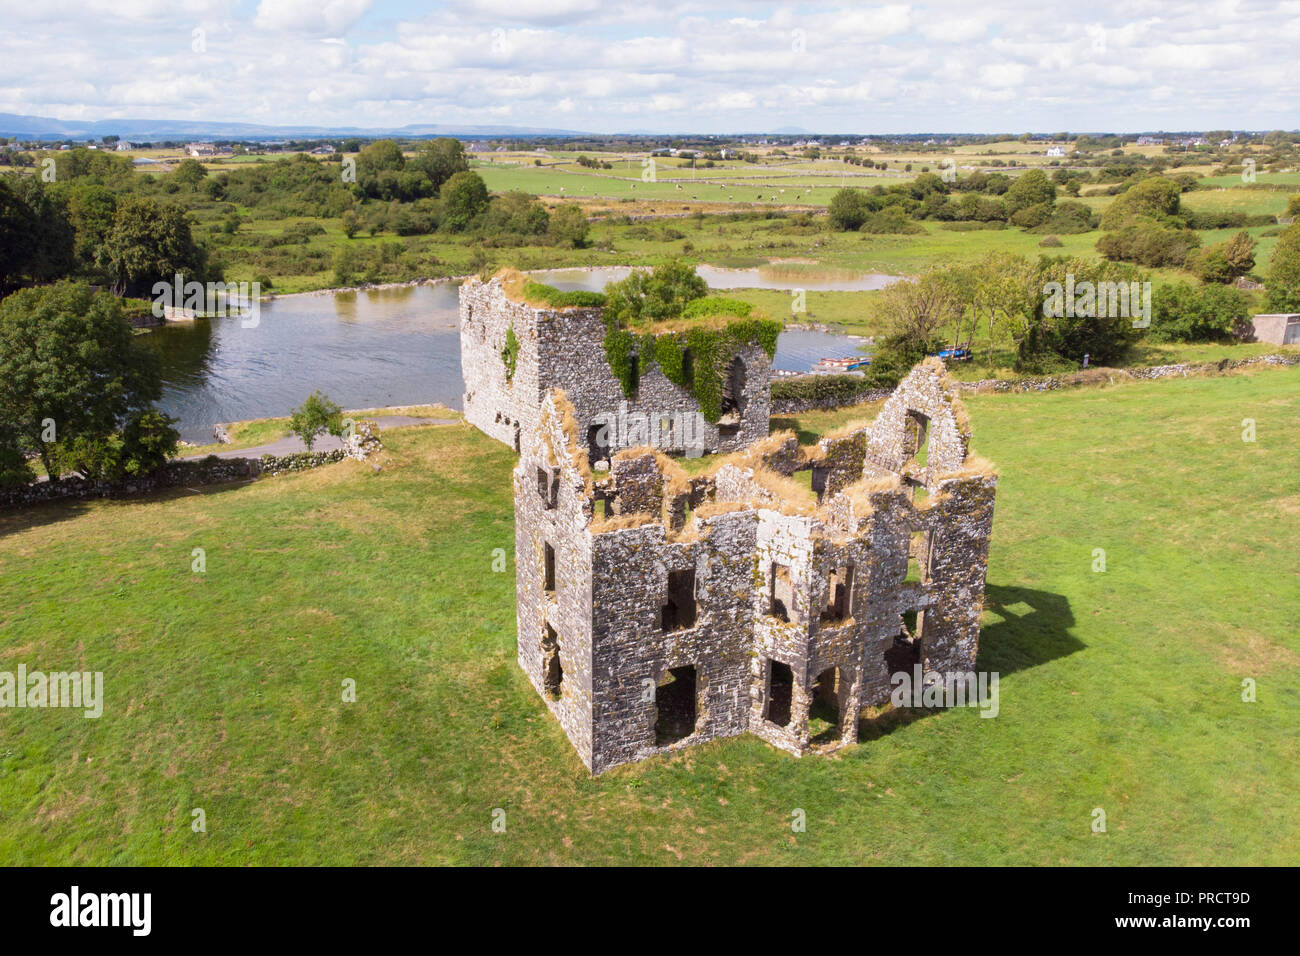 An aerial view of Annaghkeen Castle, situated next to Lough Corrib in County Galway, Ireland. Stock Photo